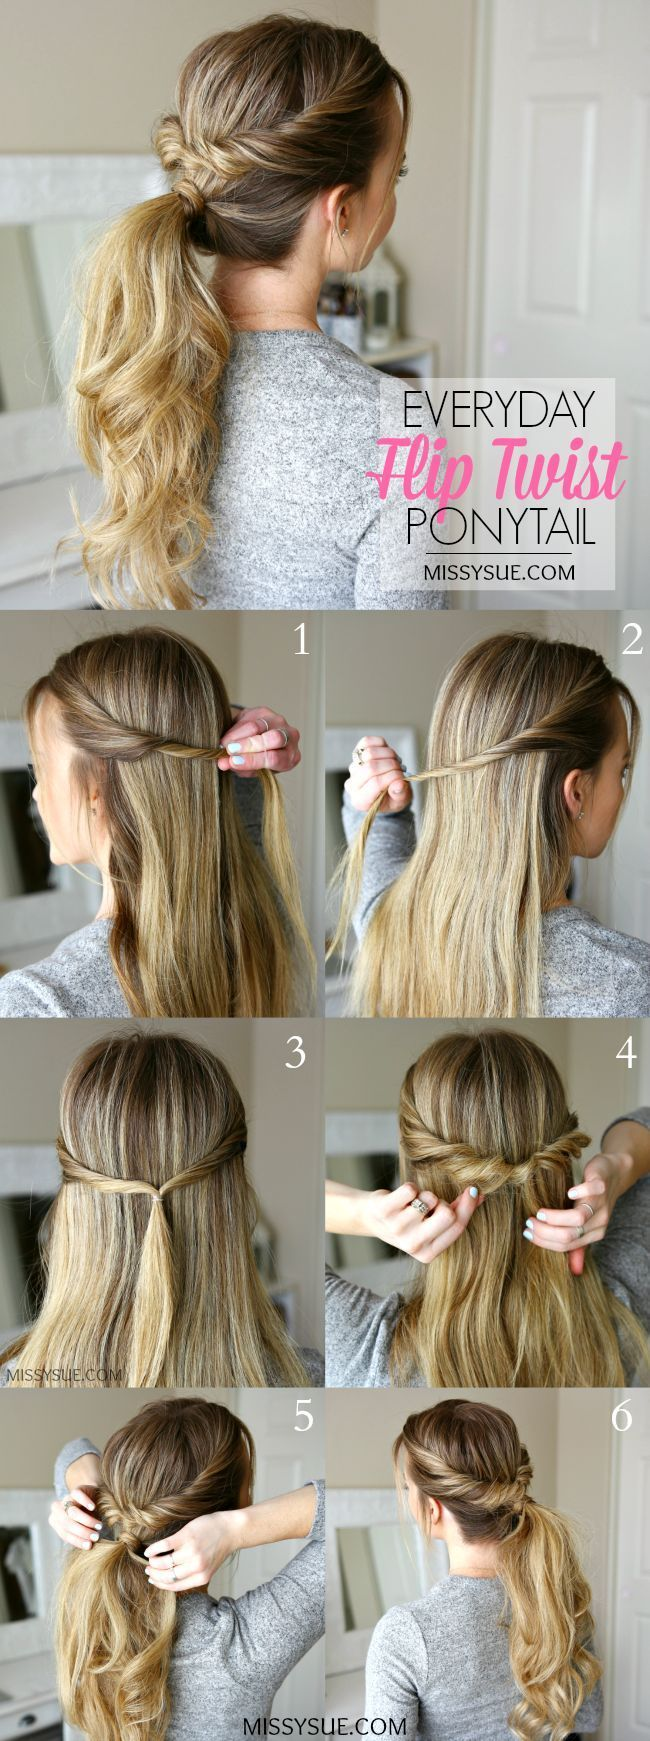 15 Easy To Do Everyday Hairstyle Ideas For Short Medium Long Hairs Twist Ponytail Easy Hairstyles Long Hair Styles